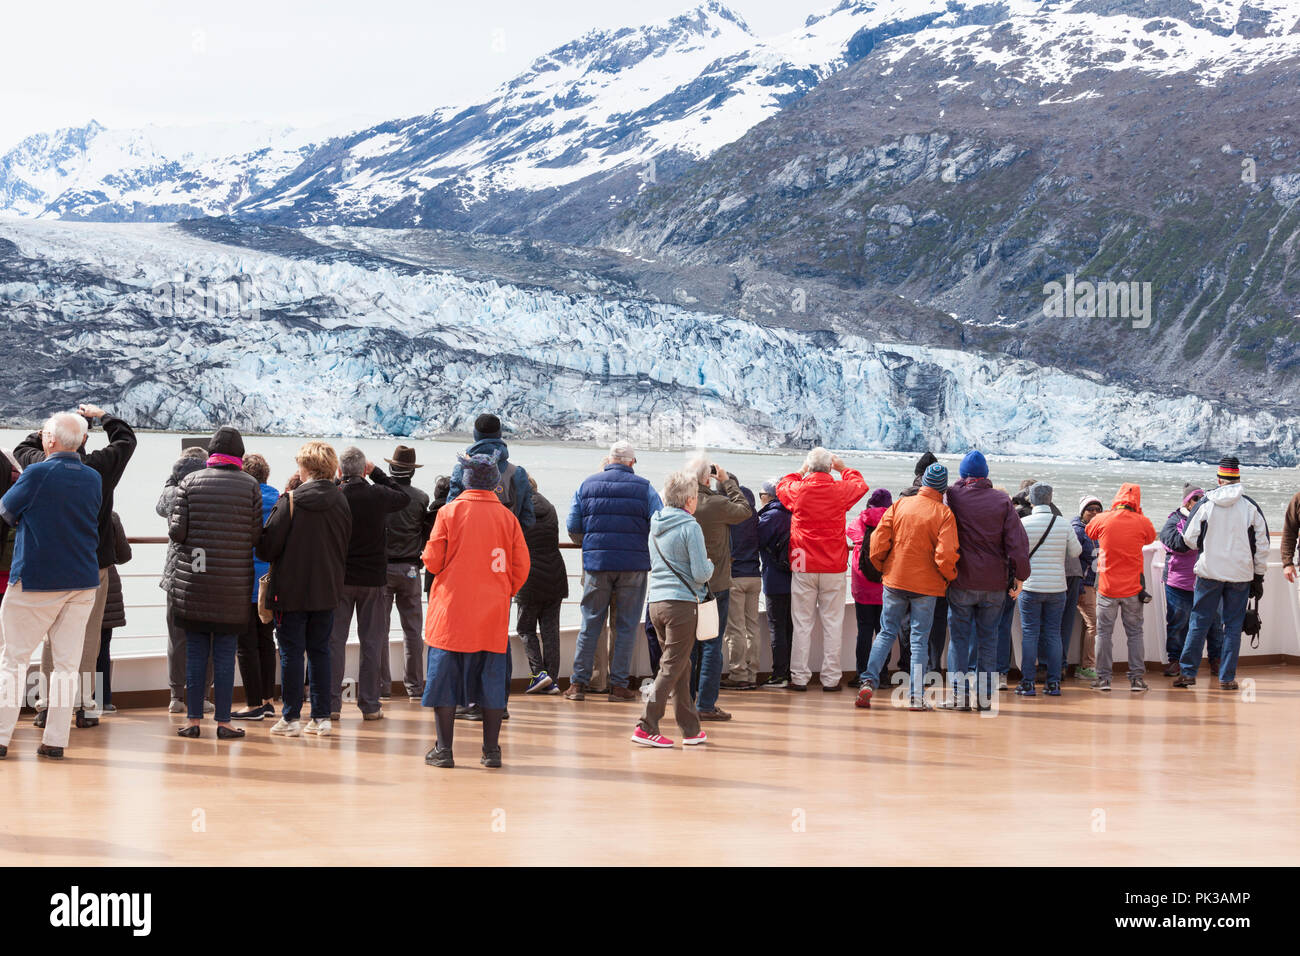 Passengers on the Holland America Line Cruises 'Nieuw Amsterdam' cruise ship enjoying the views of a glacier in Johns Hopkins Inlet of Glacier Bay - Stock Image